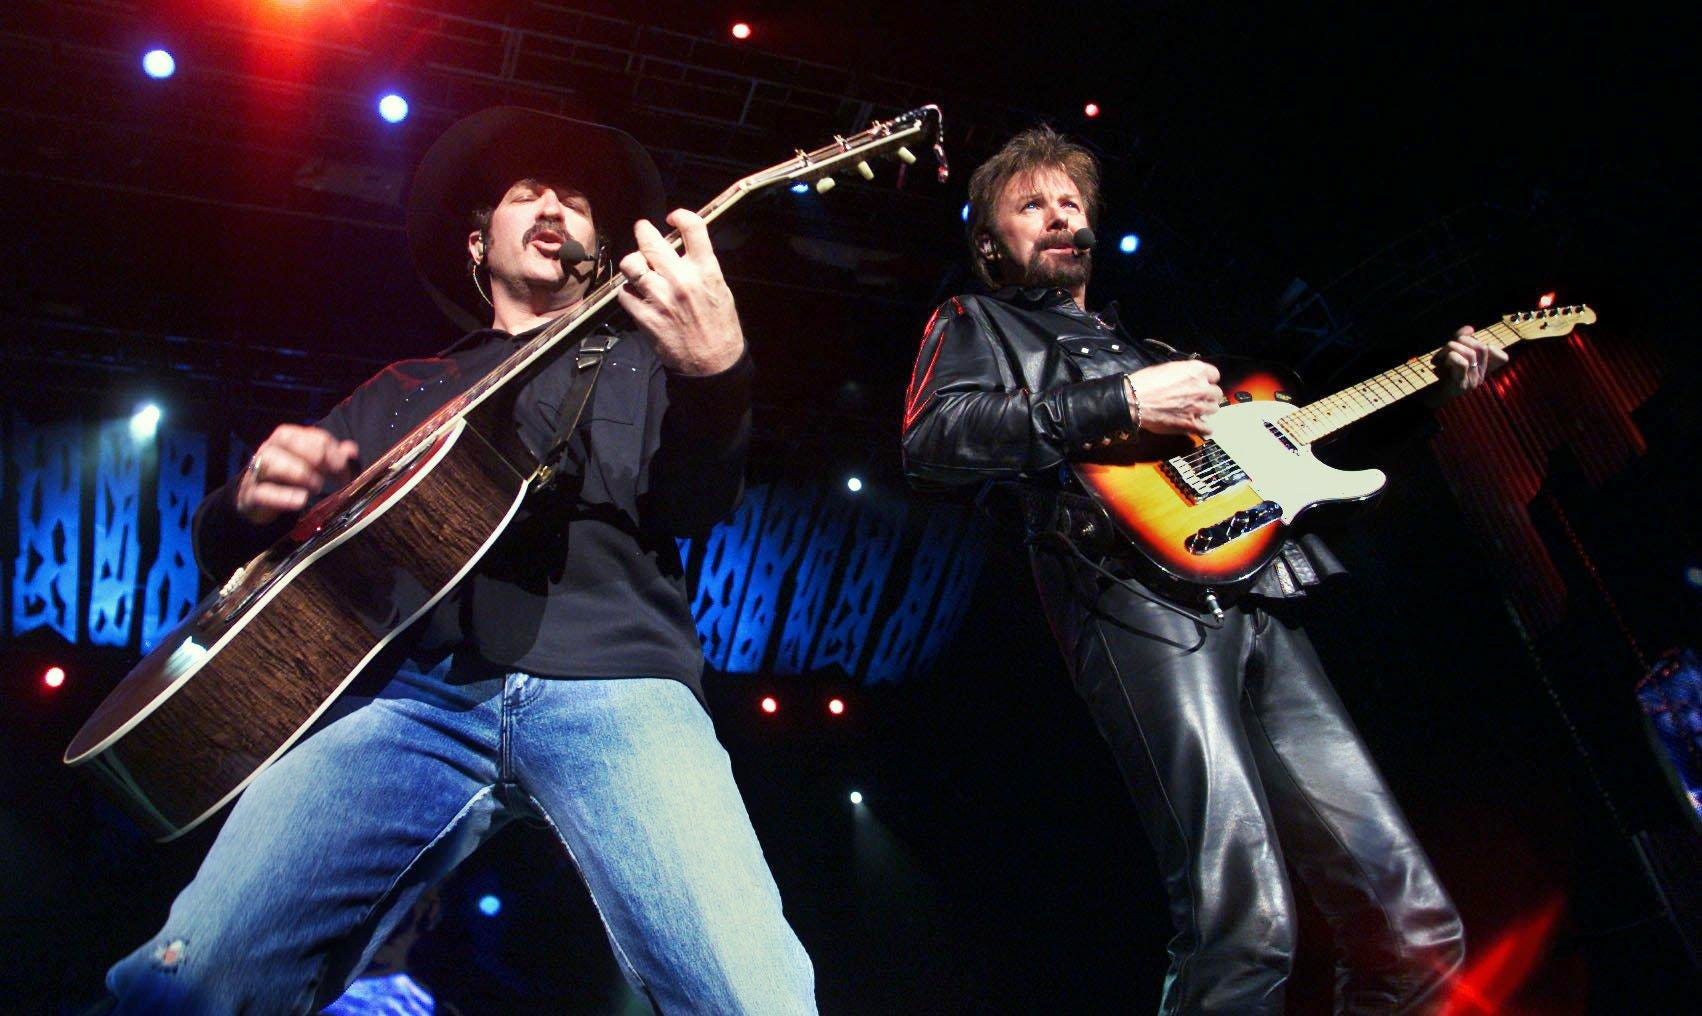 Brooks & Dunn ramp up first nationwide tour in 10 years at Riverbend in Cincinnati